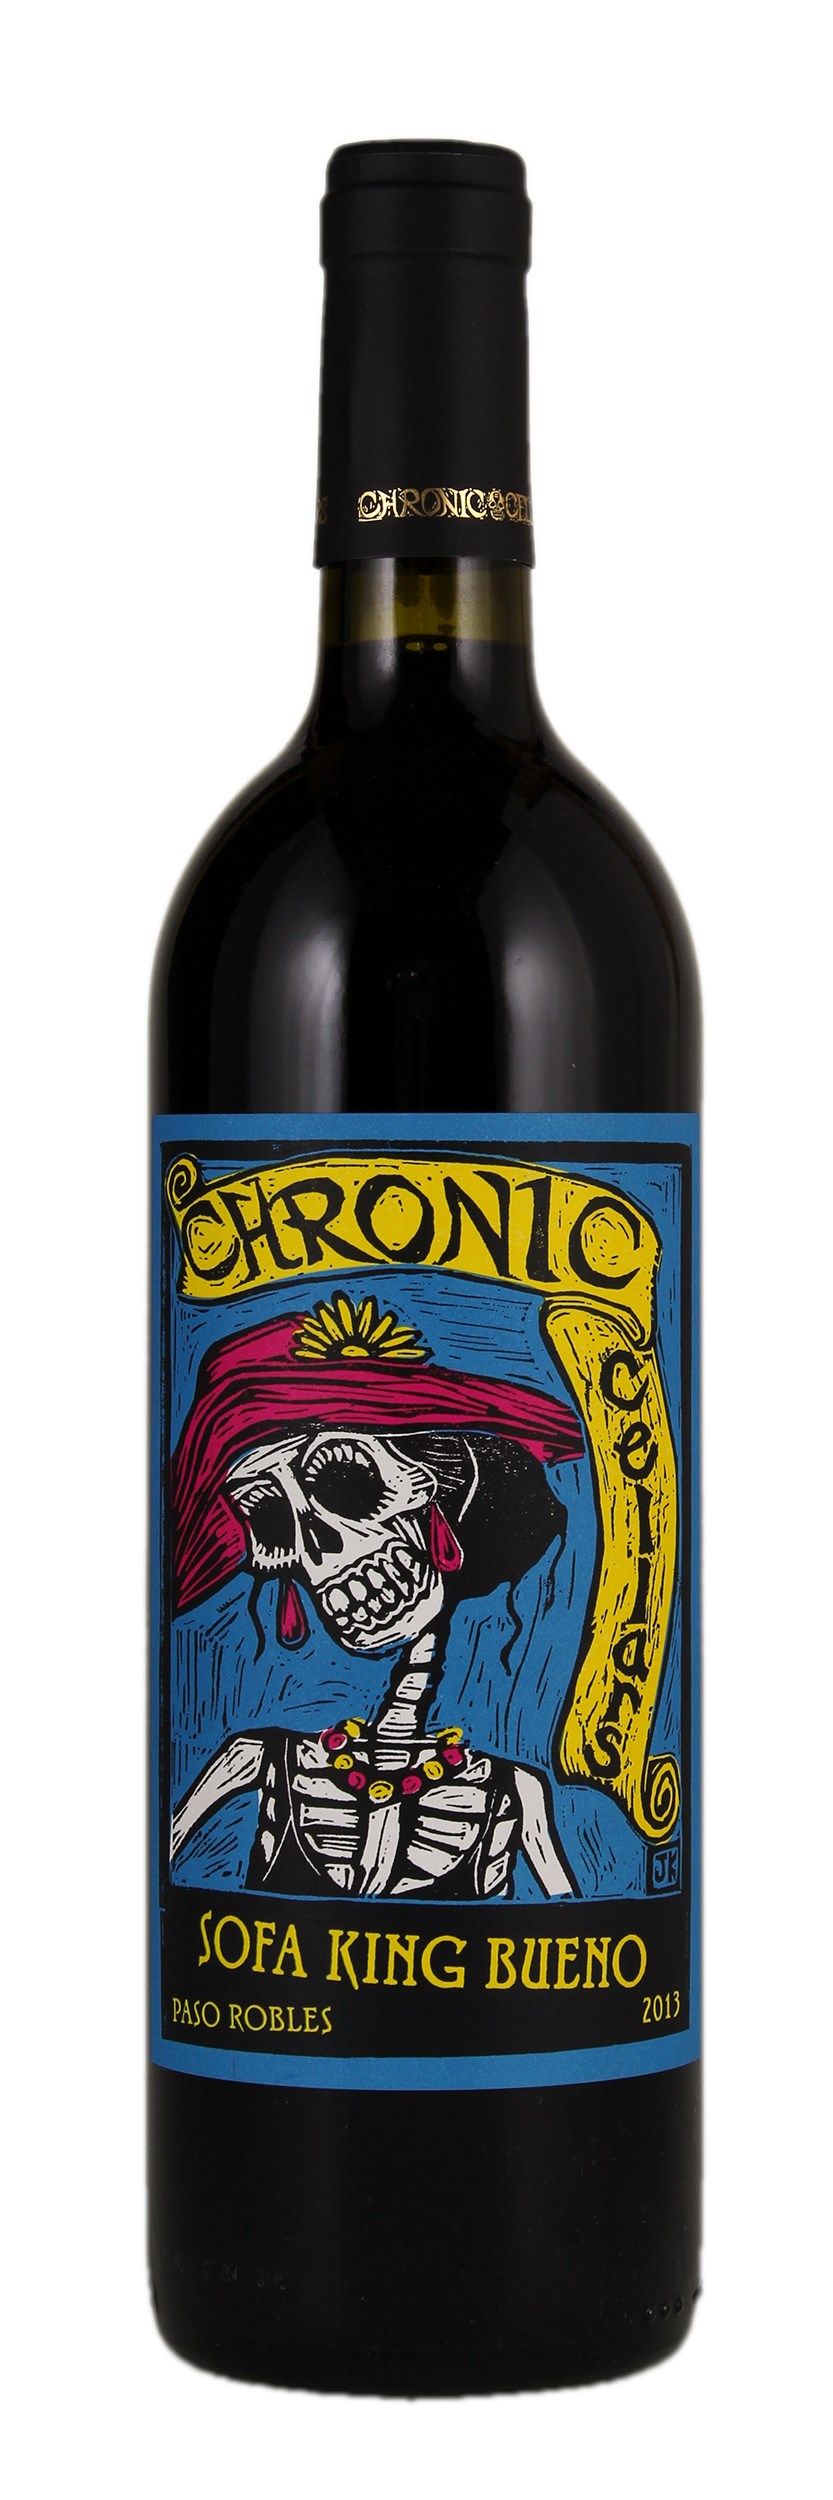 Chronic Cellars Sofa King Bueno 2013 Red Wine From United States